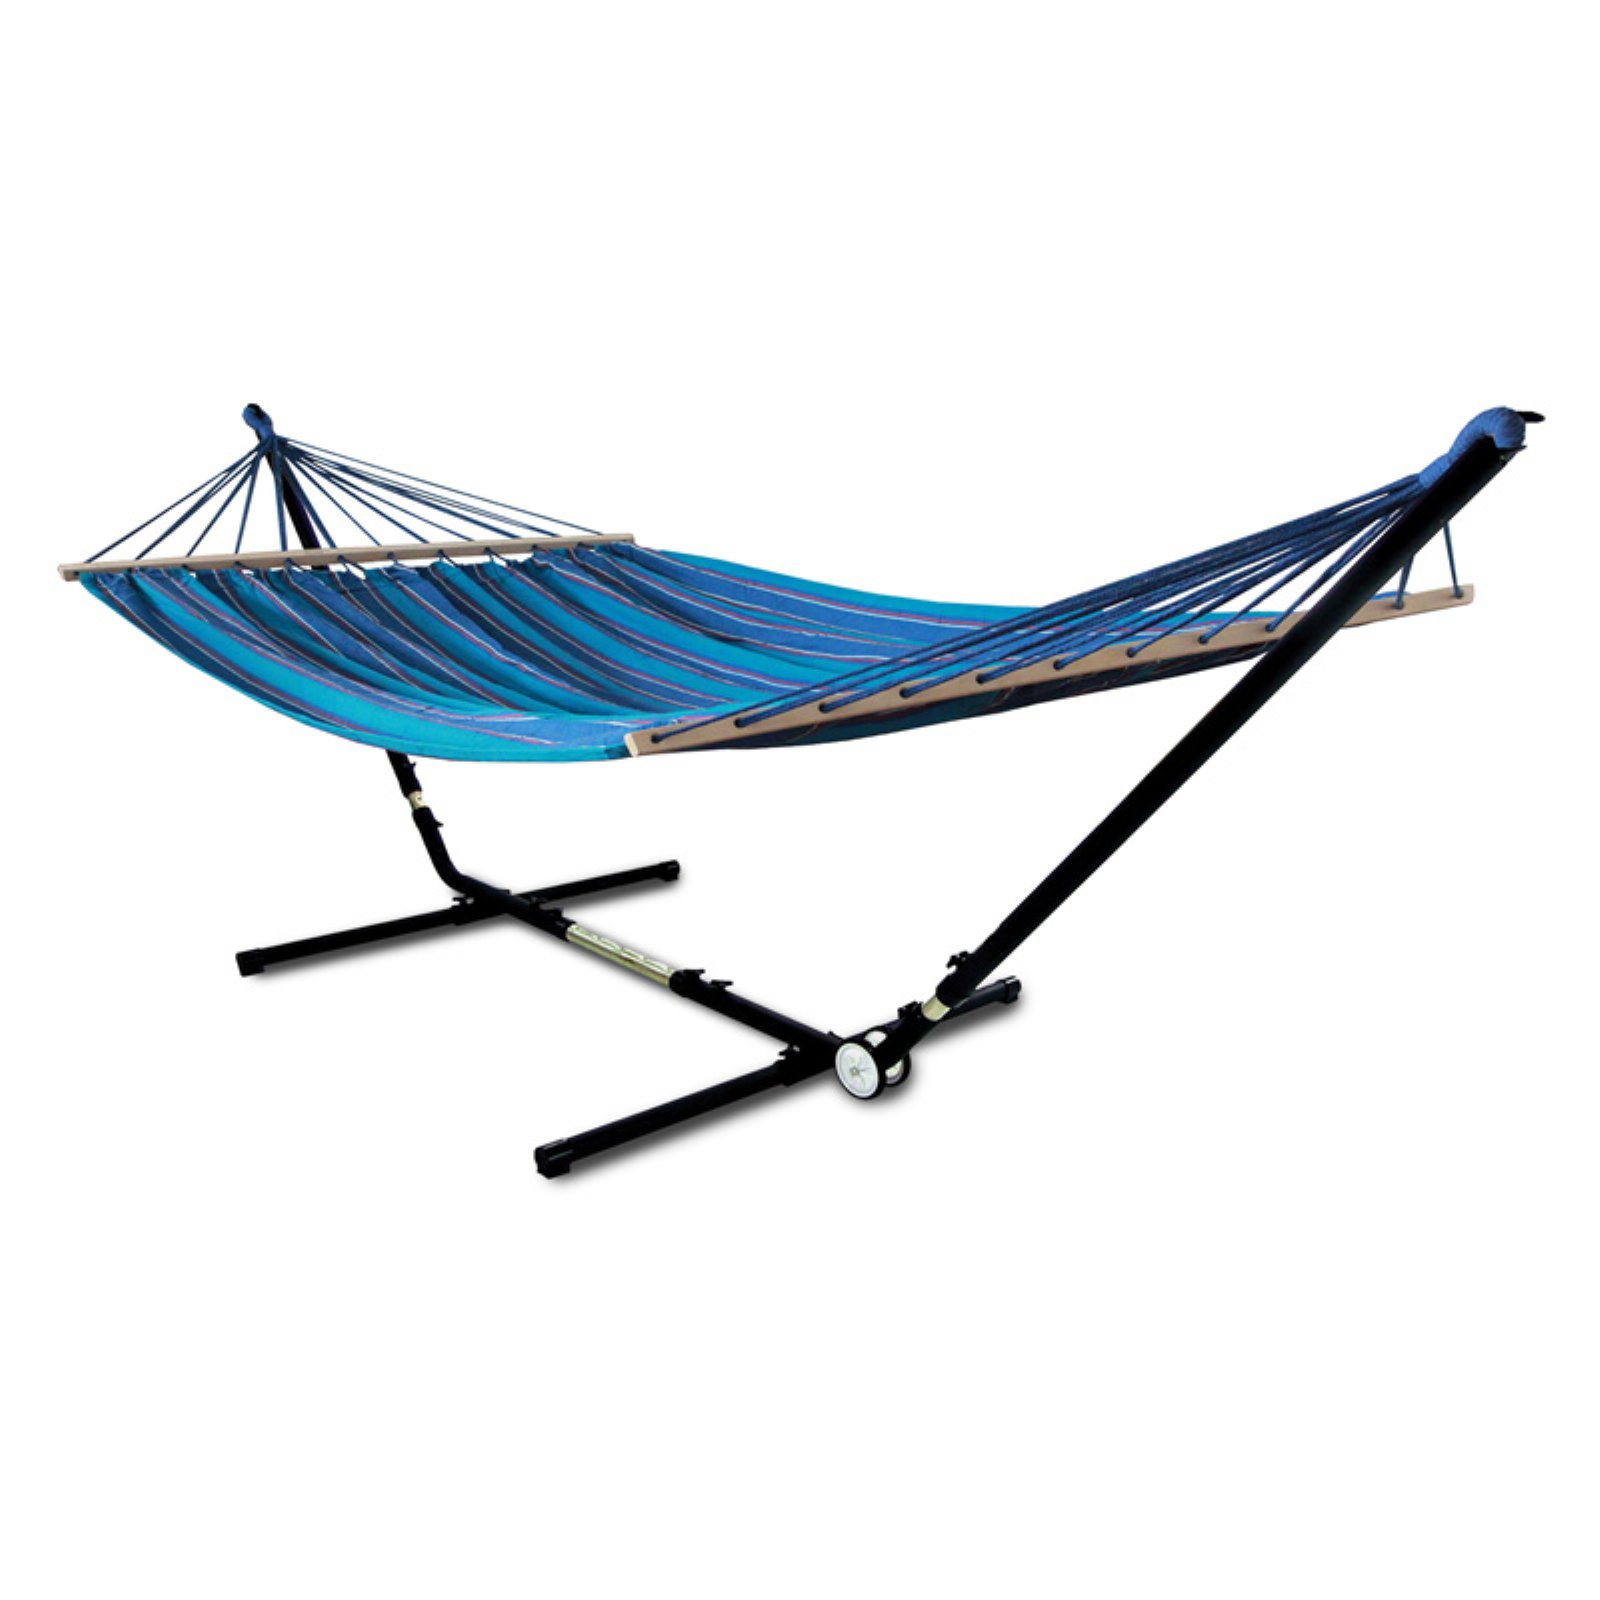 Hammaka Woven Hammock with Adjust to Fit Stand